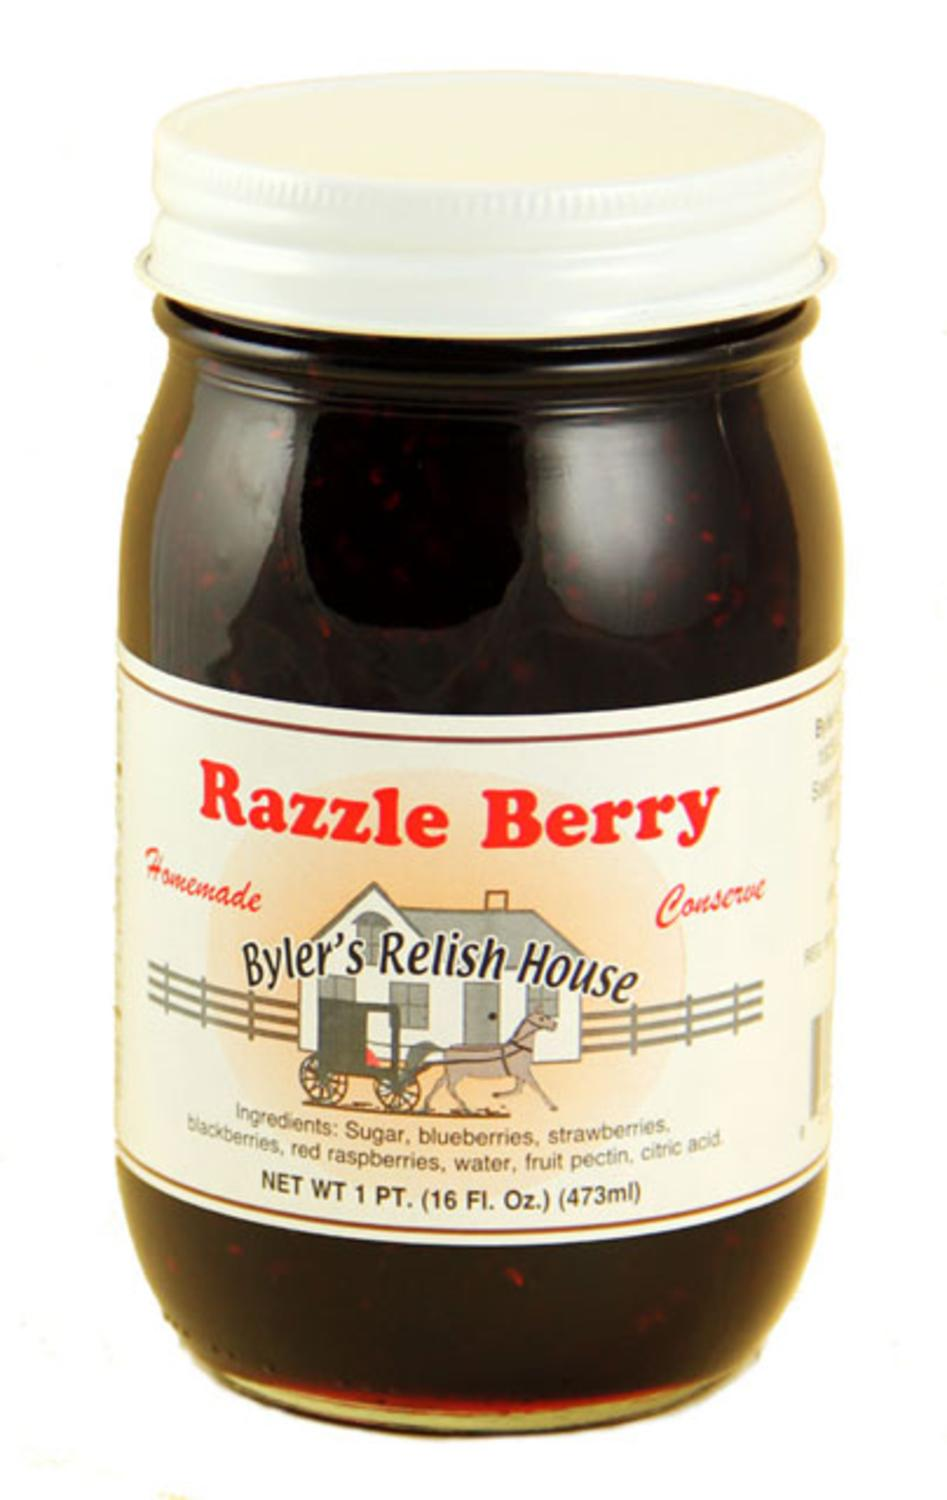 Byler's Relish House Homemade Amish Country Razzle Berry Jam Fruit Spread 16 oz. by Byler's Relish House